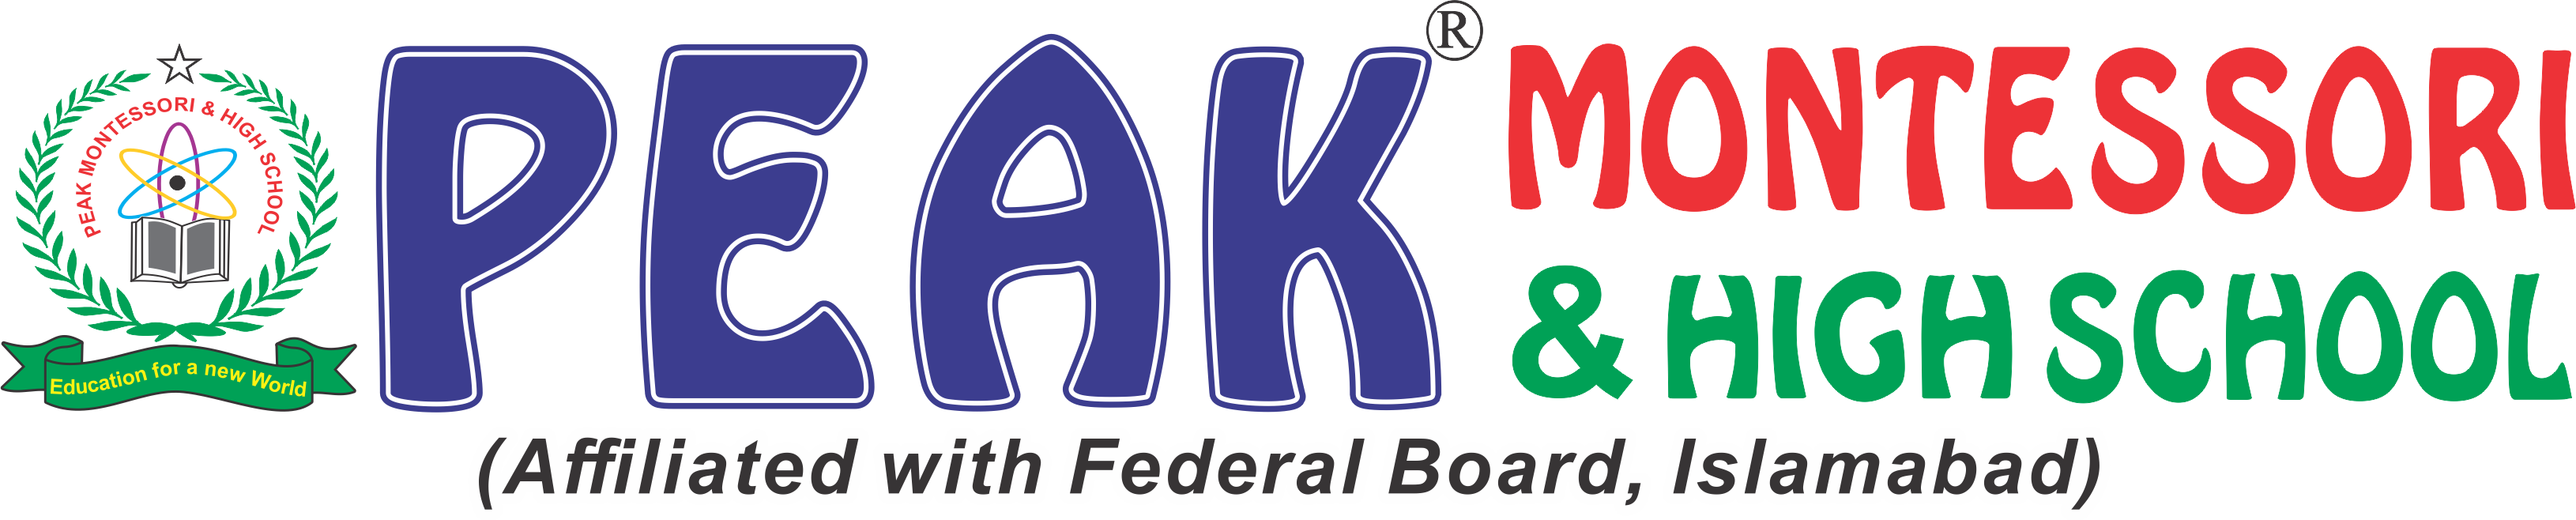 Peak School Logo & Name R (1)